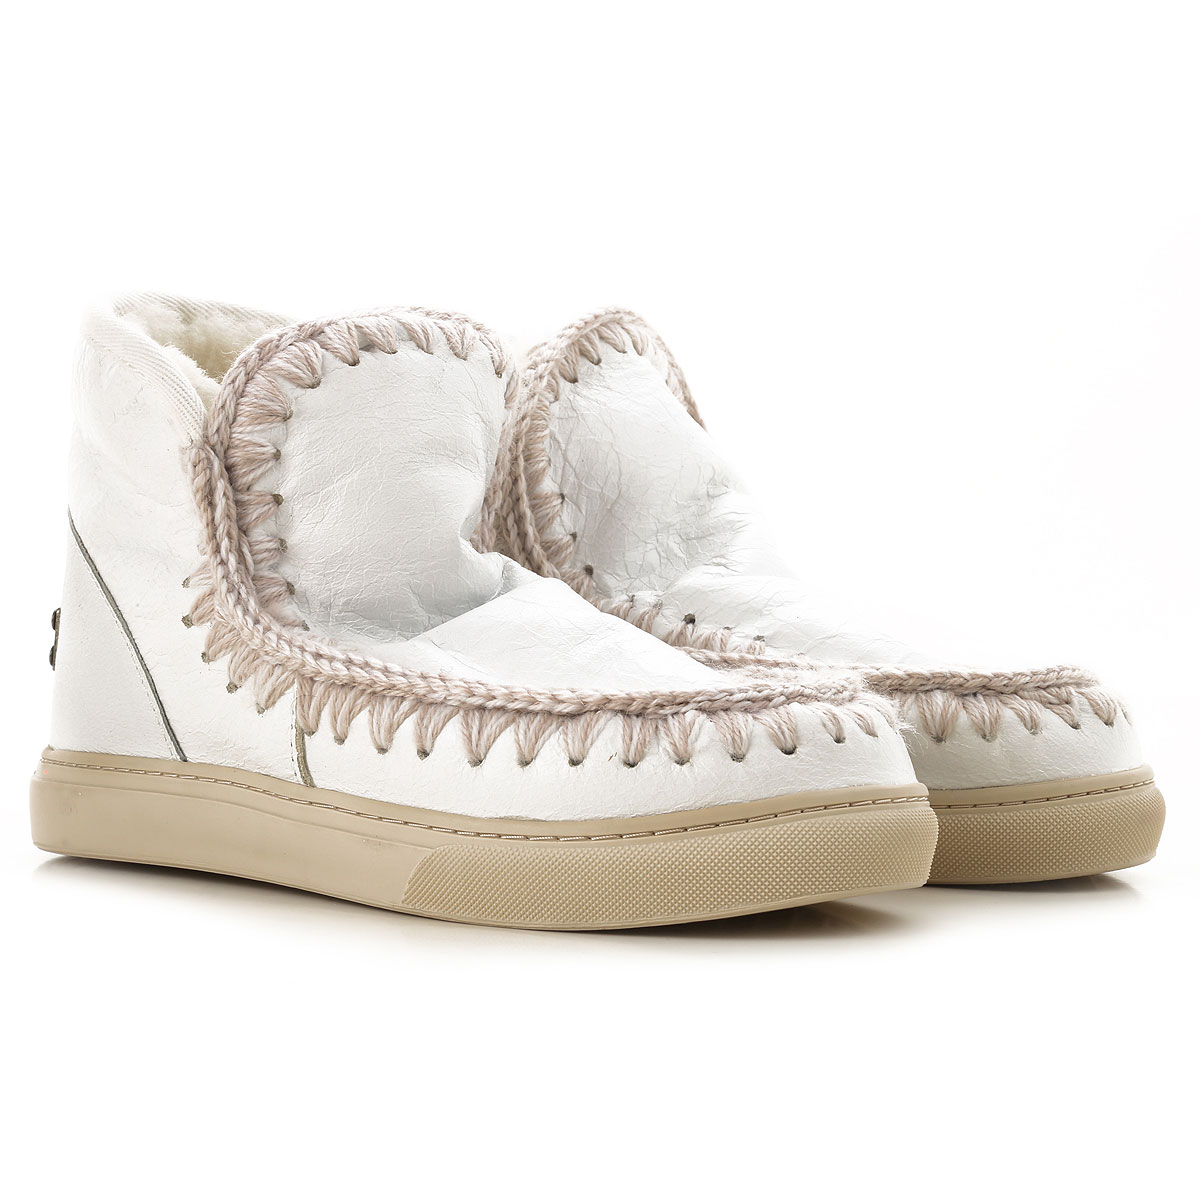 Image of Mou Boots for Women, Booties, White, Leather, 2017, EUR 36 - UK 3 - USA 5.5 EUR 37 - UK 4 - USA 6.5 EUR 38 - UK 5 - USA 7.5 EUR 39 - UK 6 - USA 8.5 EUR 40 - UK 7 - USA 9.5